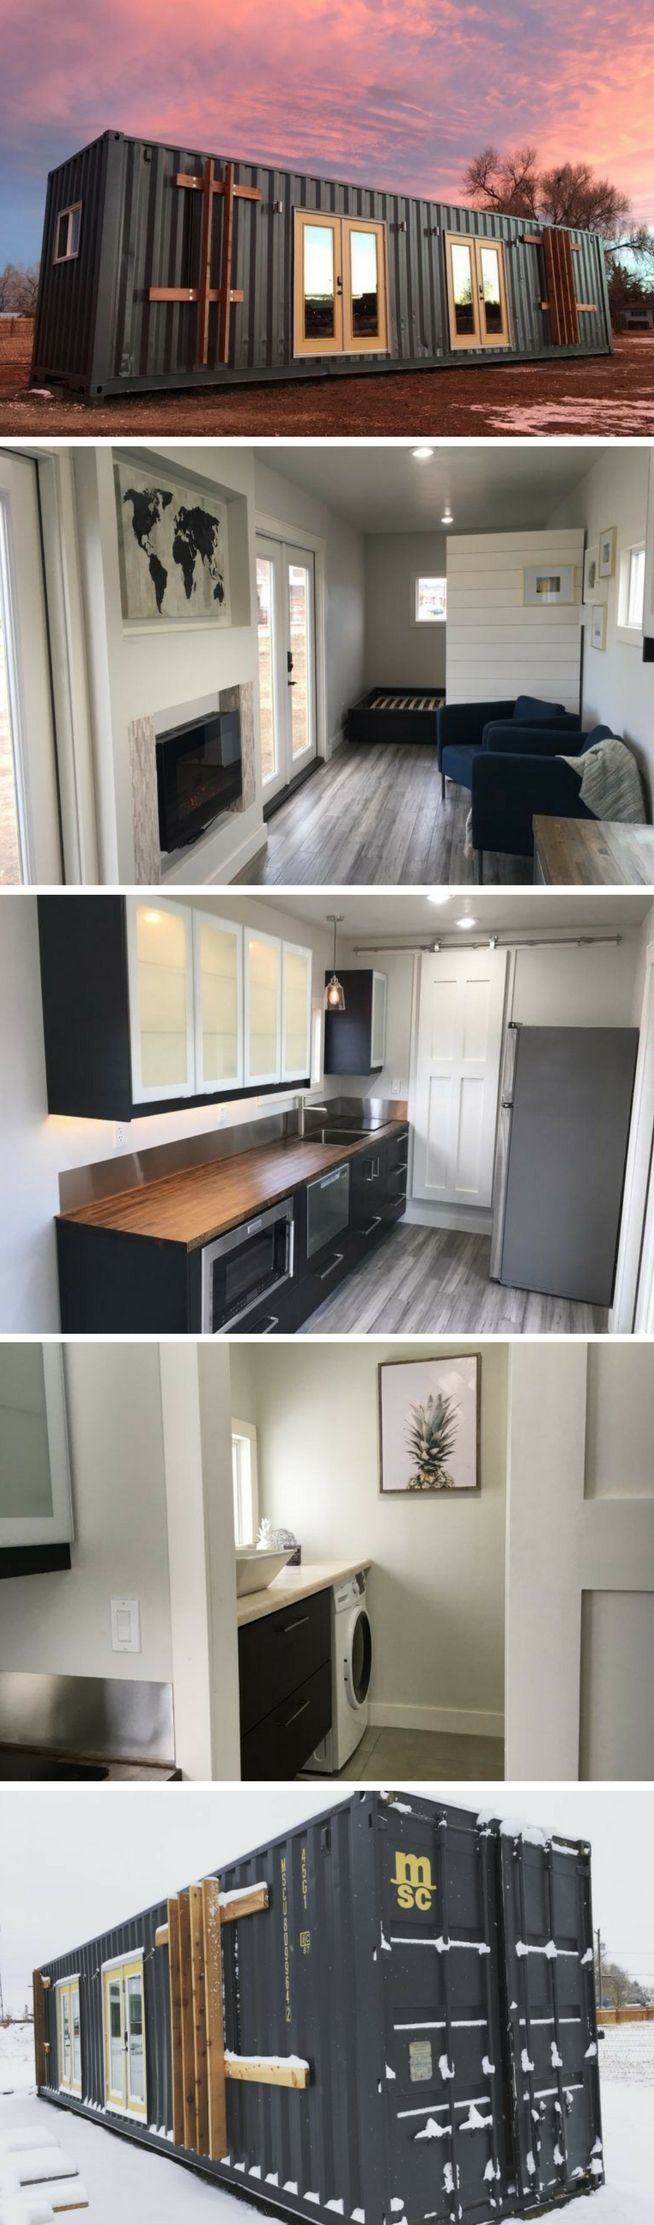 Best Kitchen Gallery: The Intellectual Tiny Container Home Tiny But Spacious Home of Shipping Containers Home Design  on rachelxblog.com